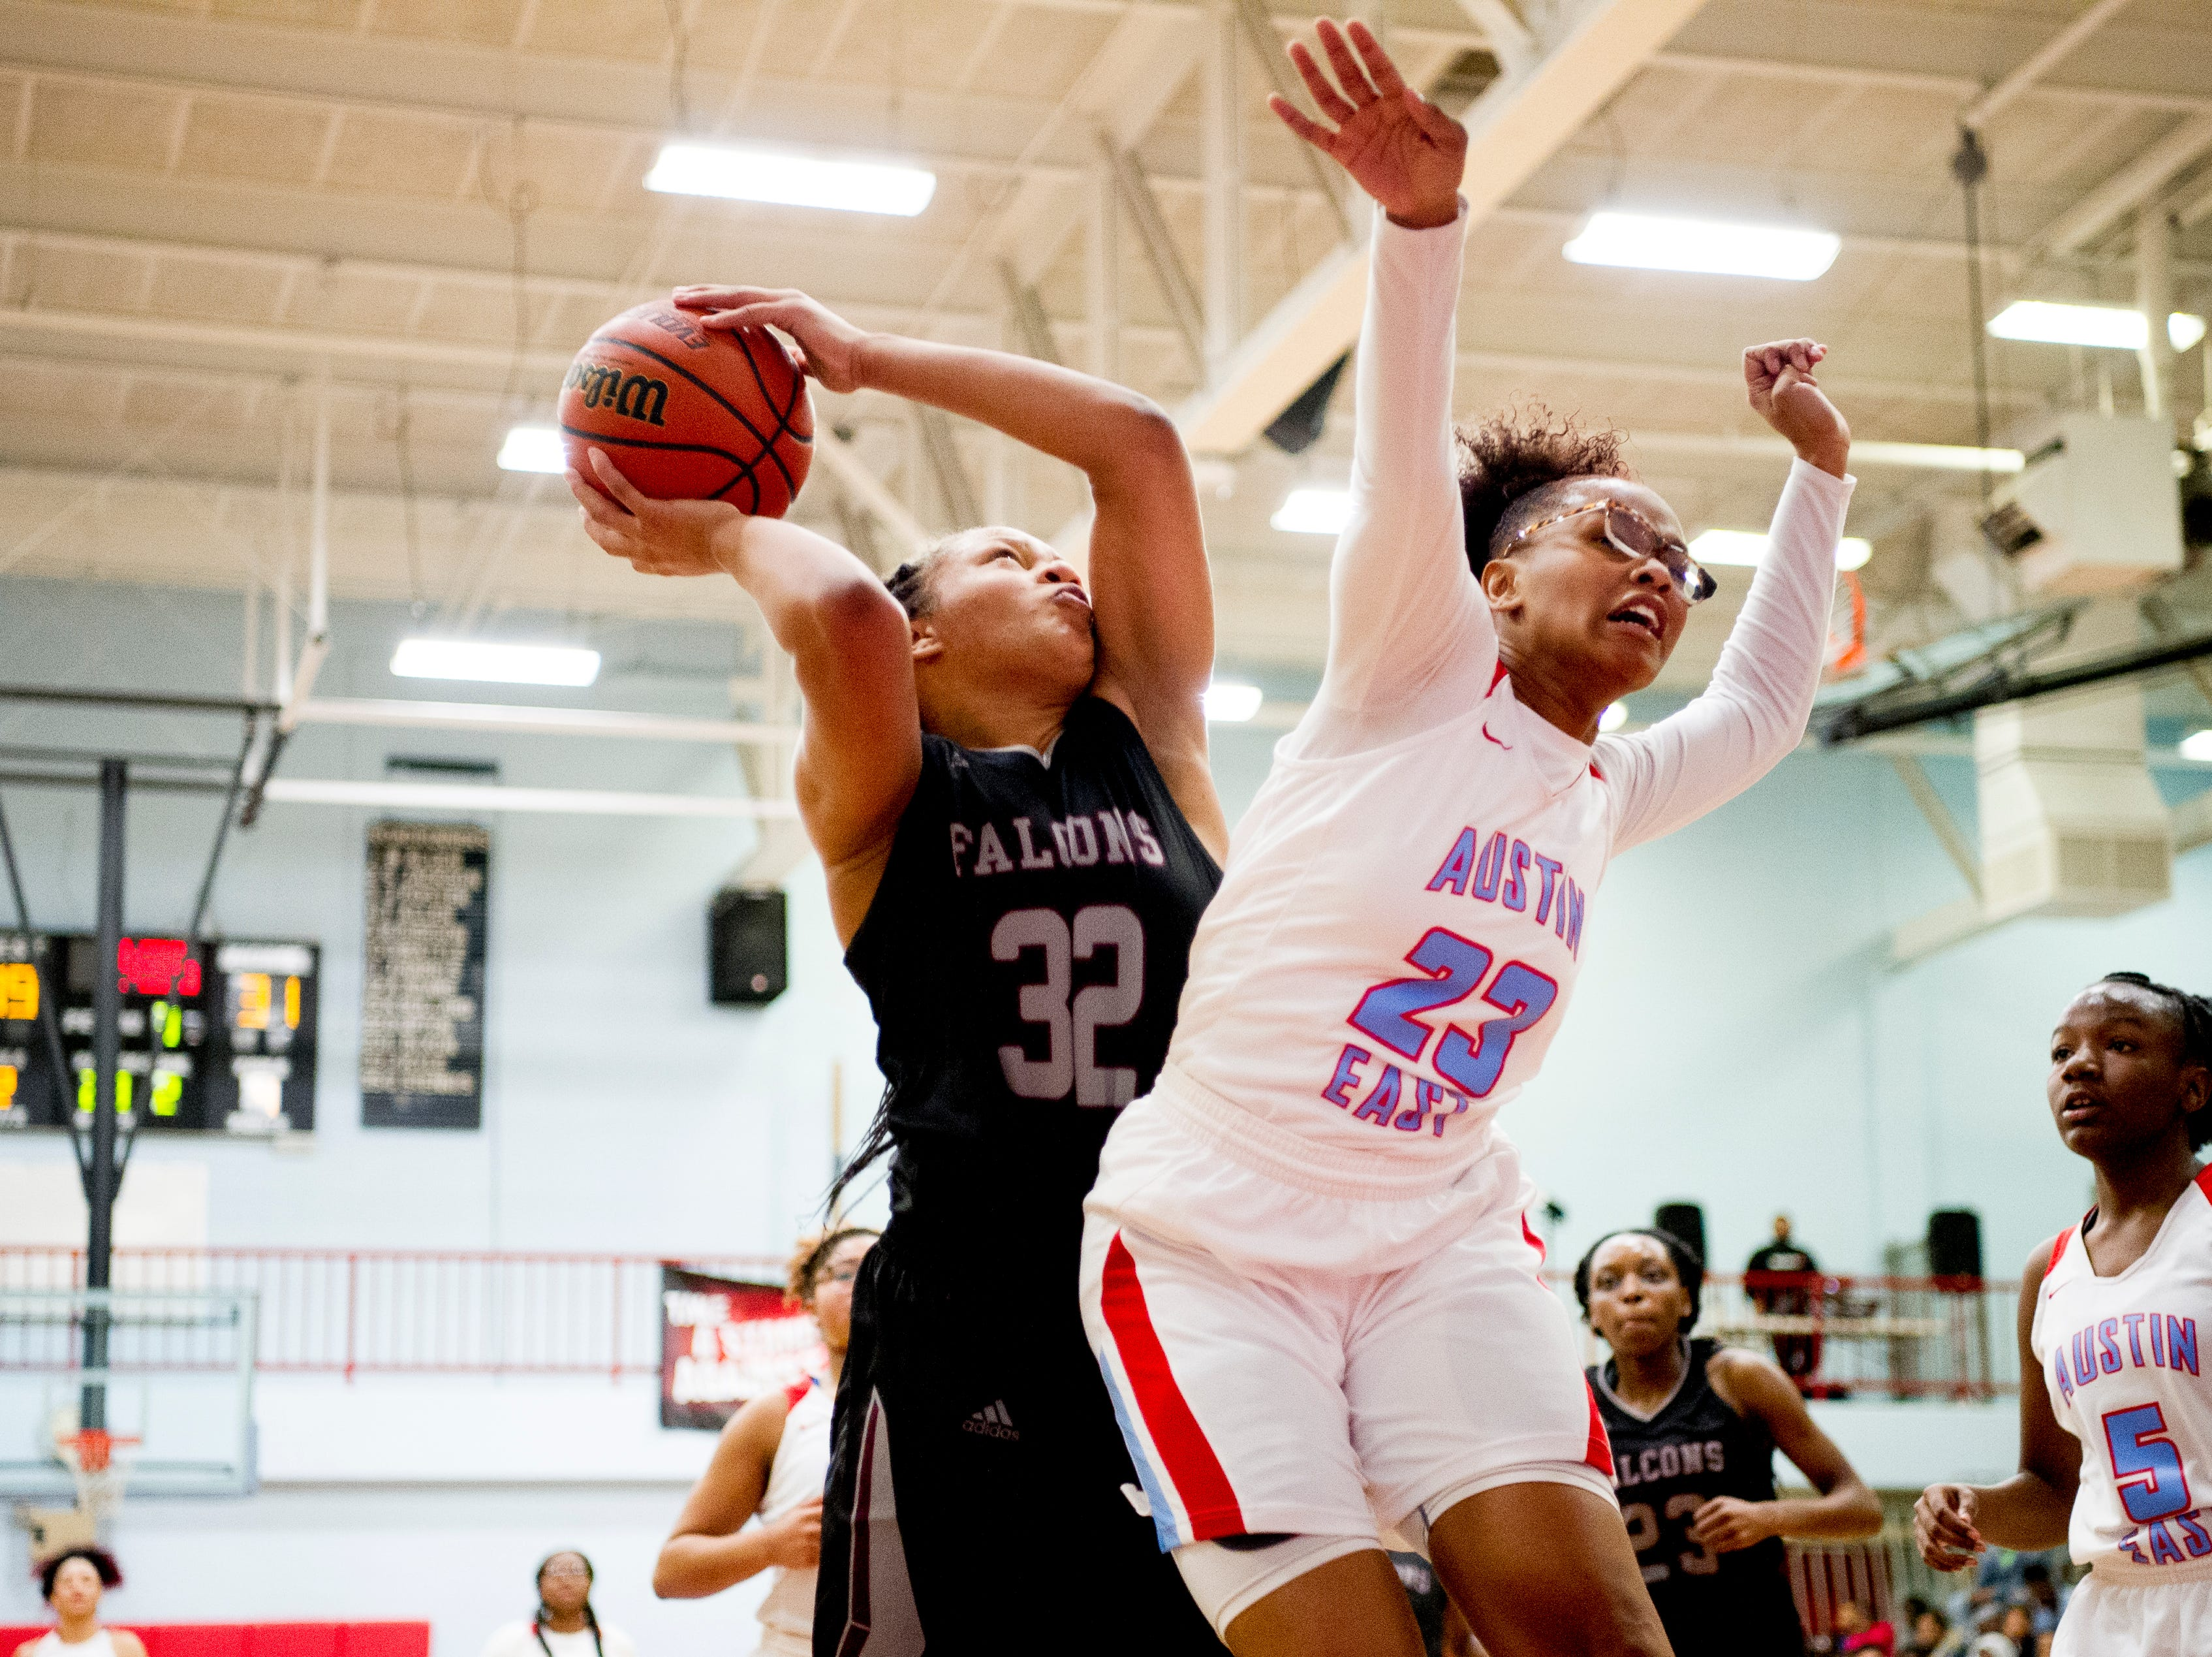 Fulton's Ranaisna Gates (32) tries to shoot past Austin-East's Camiah Wilson (23) during a game between Austin-East and Fulton at Austin-East High School in Knoxville, Tennessee on Saturday, January 5, 2019.